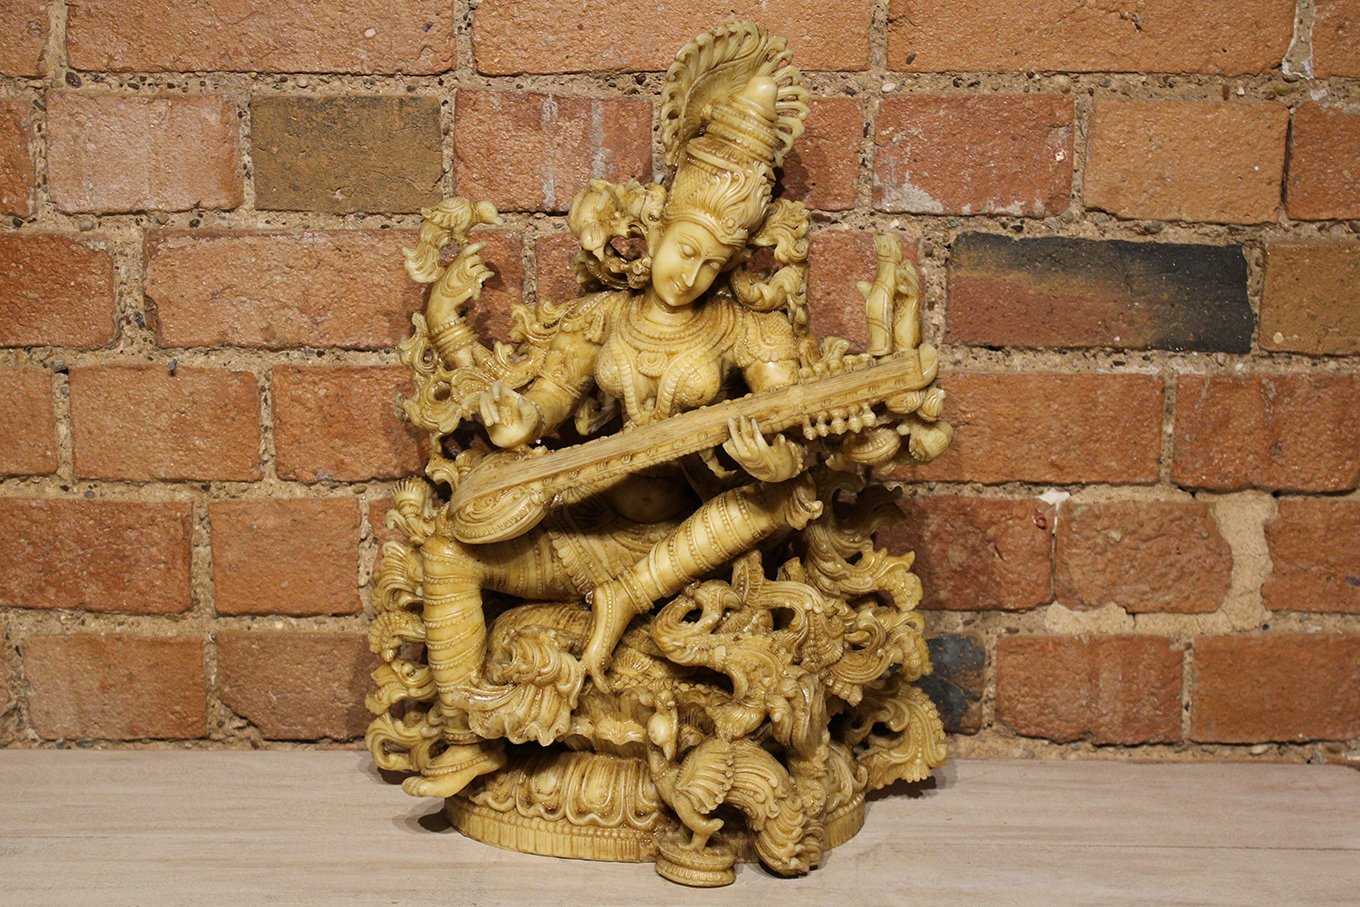 Intricately hand-carved Saraswati statue